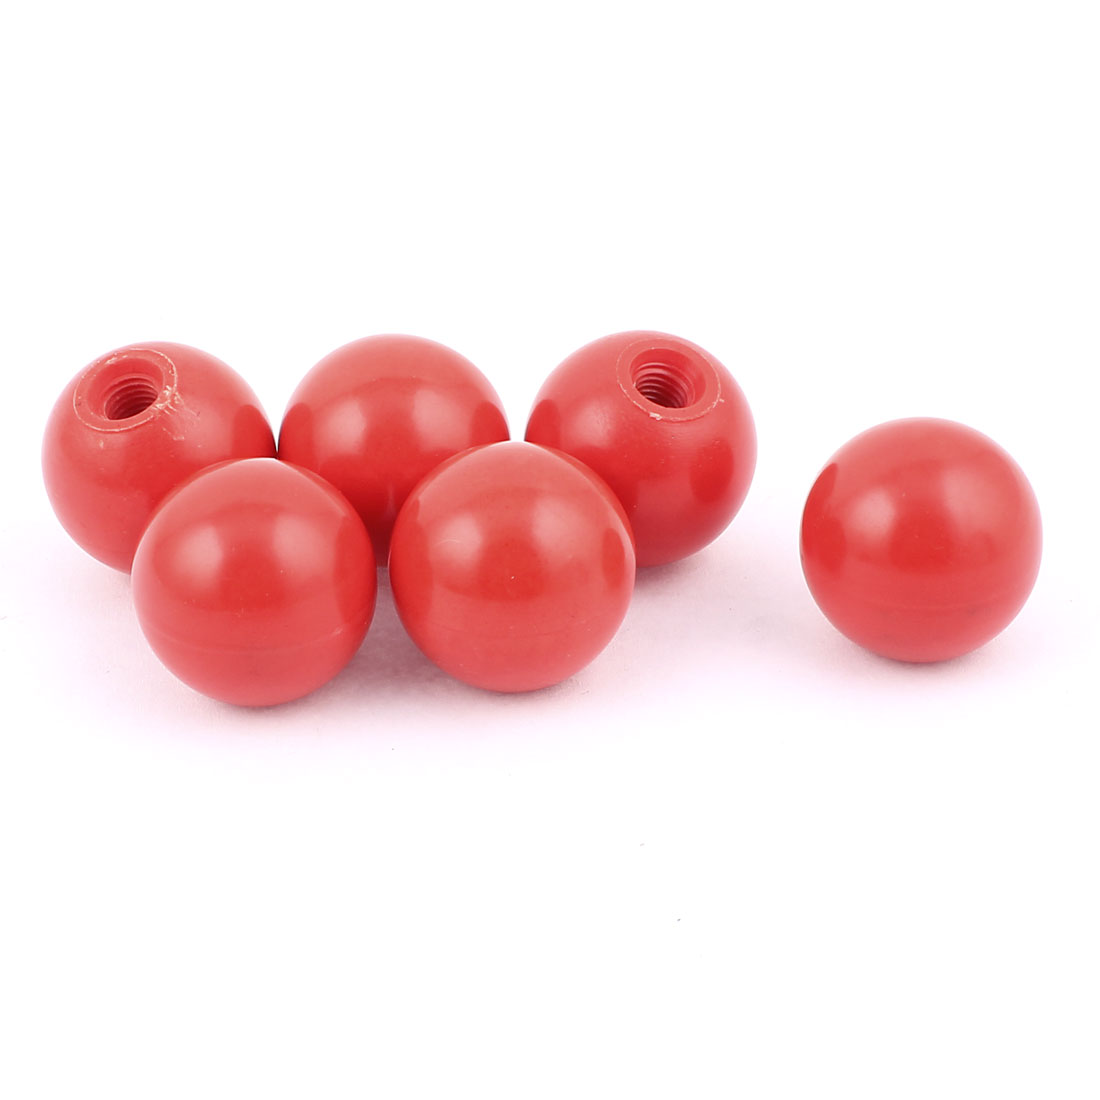 6pcs M7 Threaded 32mm Dia Plastic Round Gear Shift Lever Ball Knob Machine Handle Red